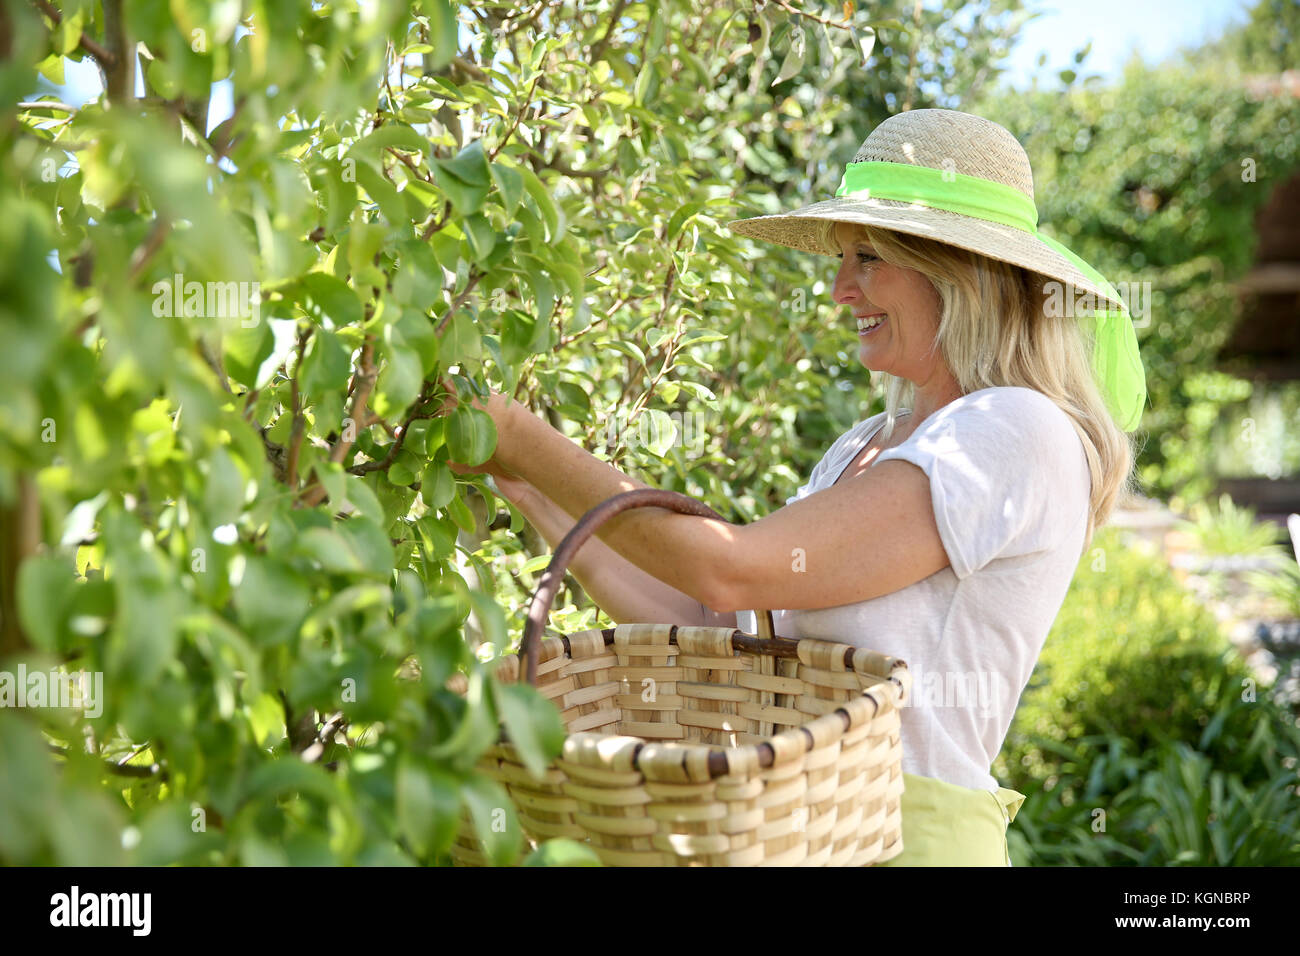 Smiling blonde Woman picking fruits d'arbre Photo Stock